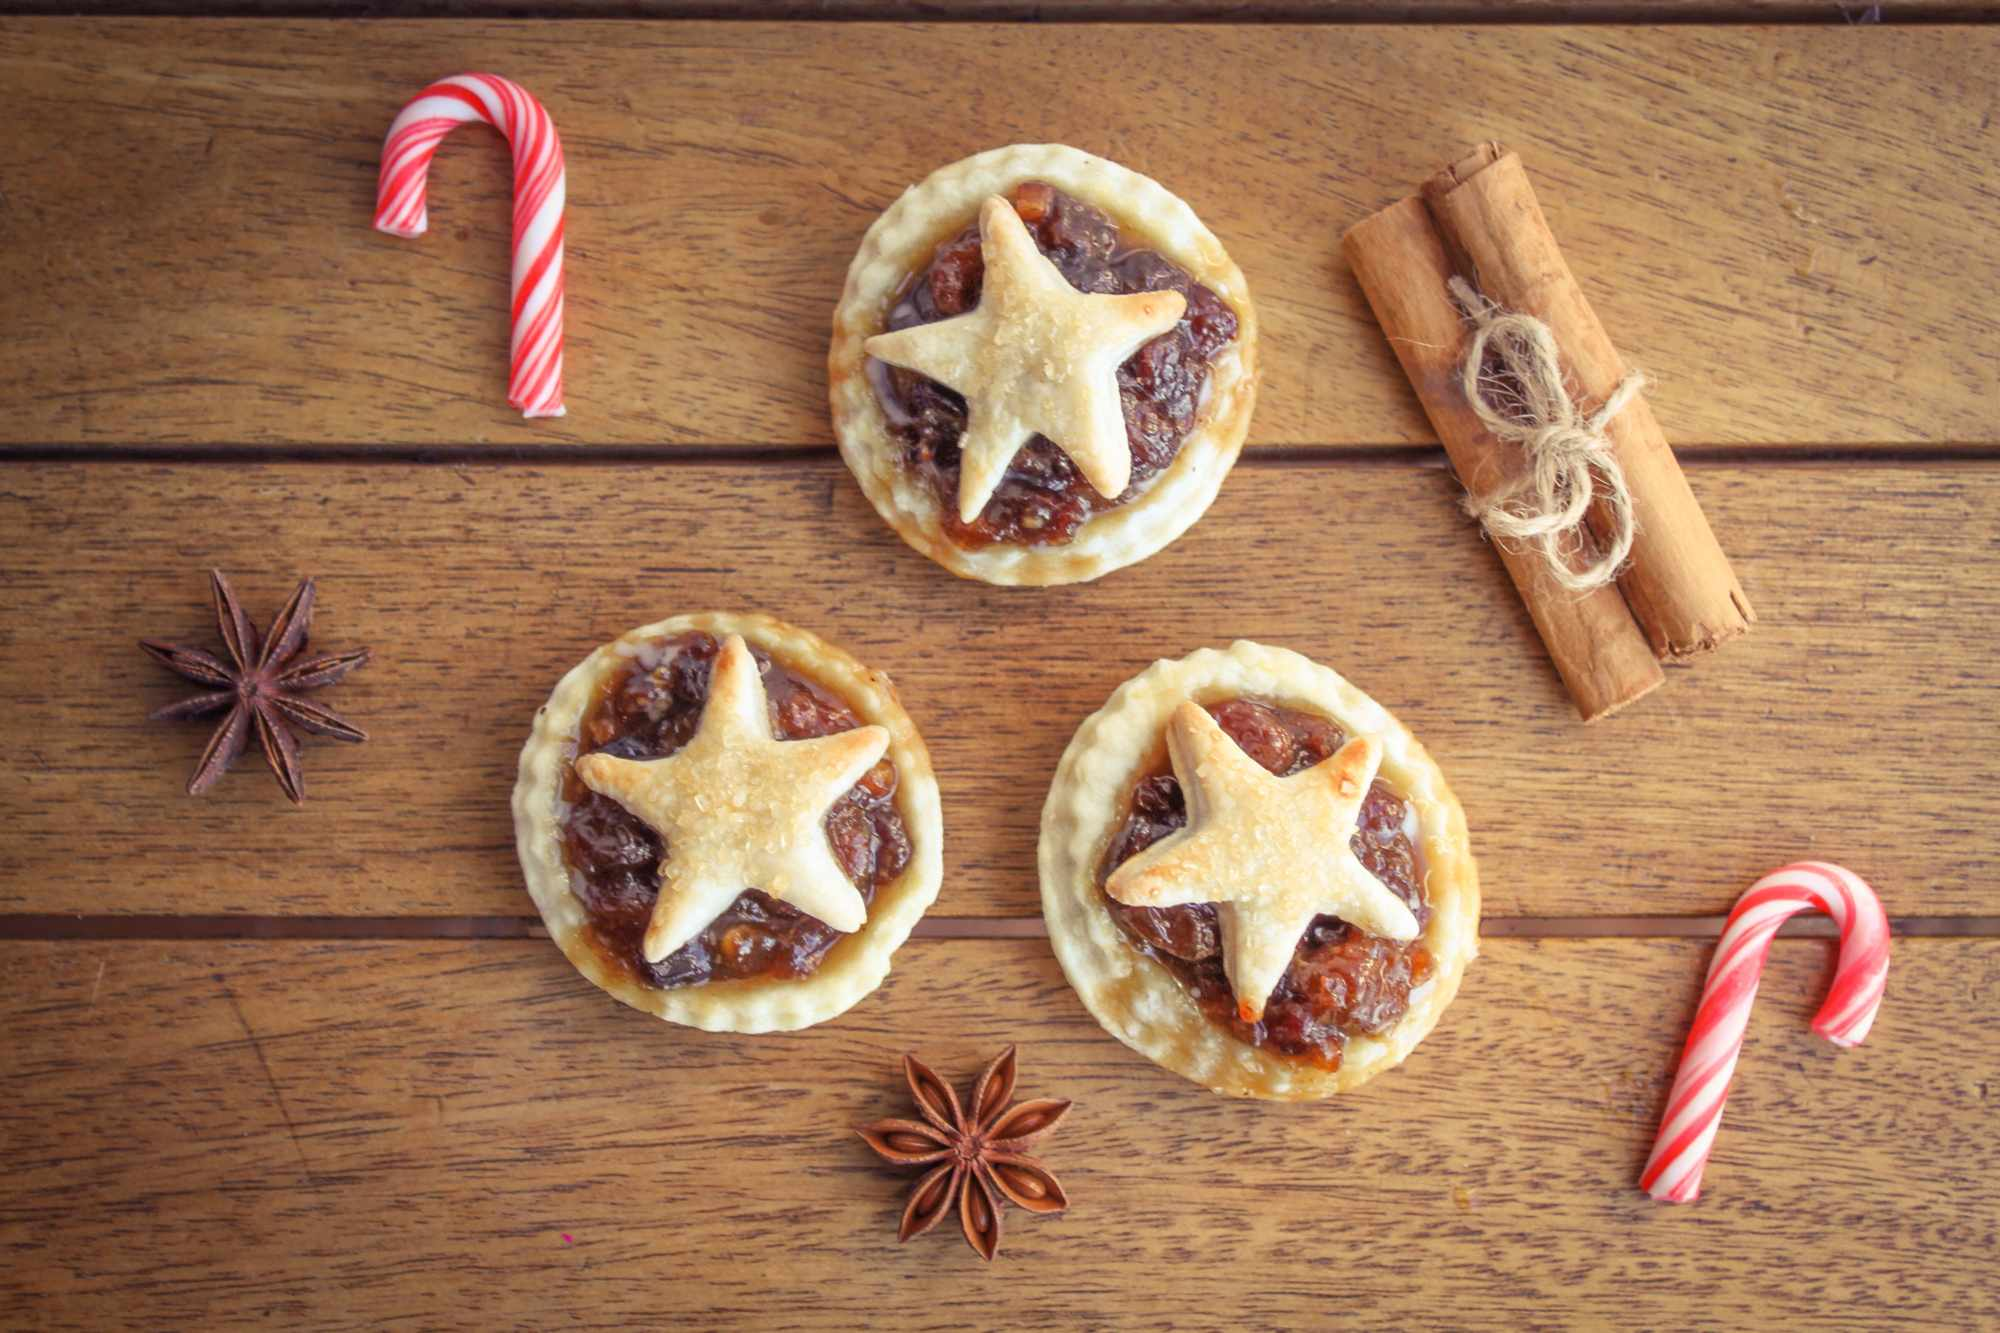 Traditional homemade mince pies with candy canes and star anis and cinnamon sticks (Getty)